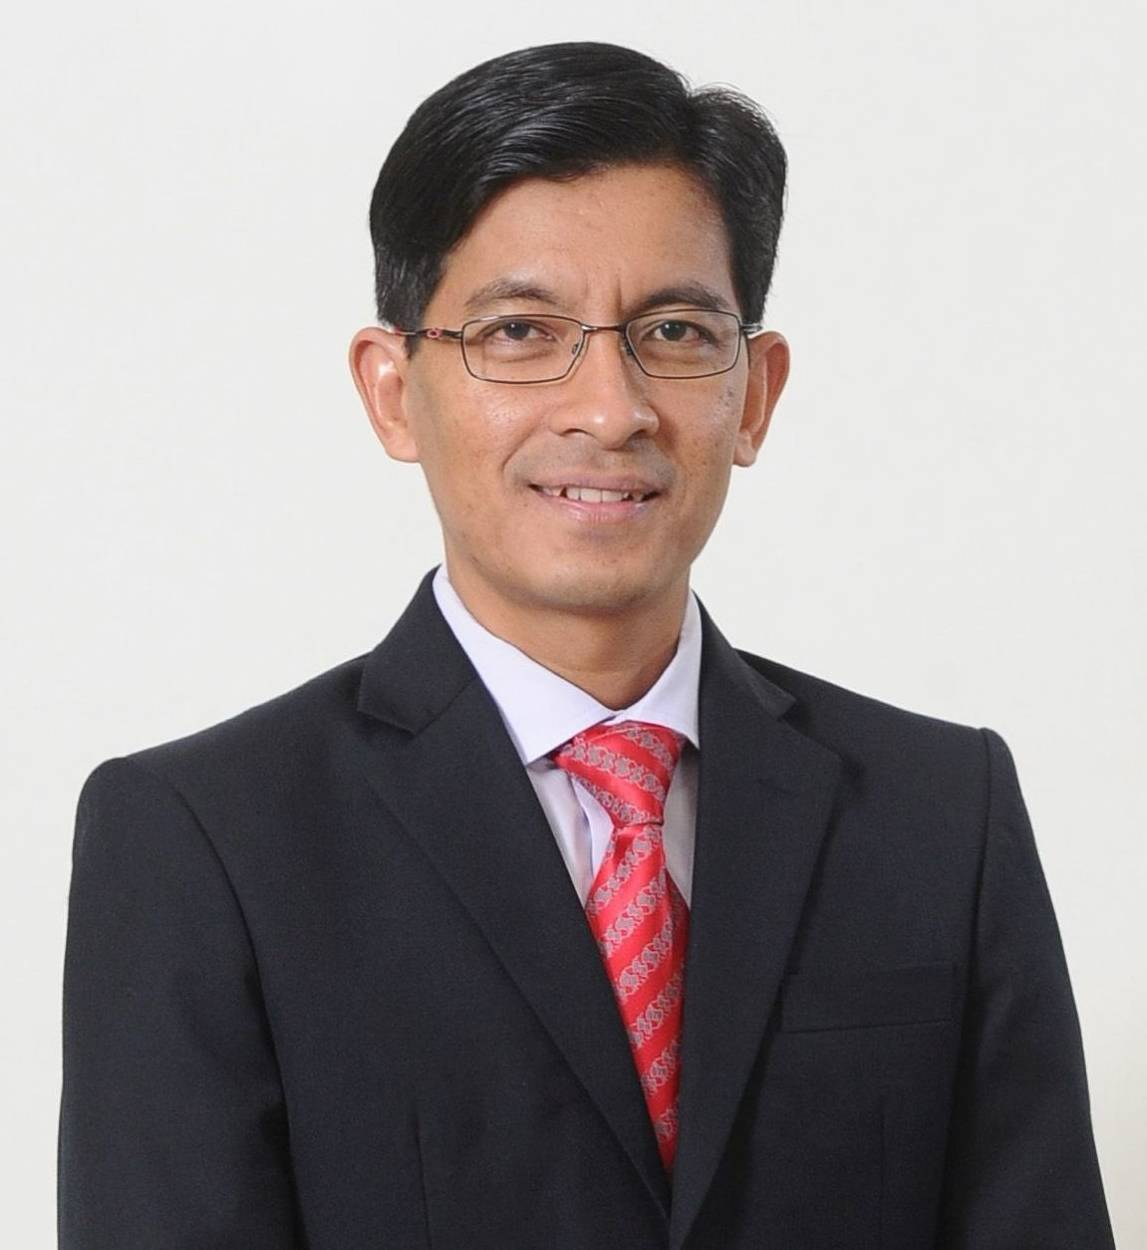 Bank Islam chief executive officer Mohd Muazzam Mohamed